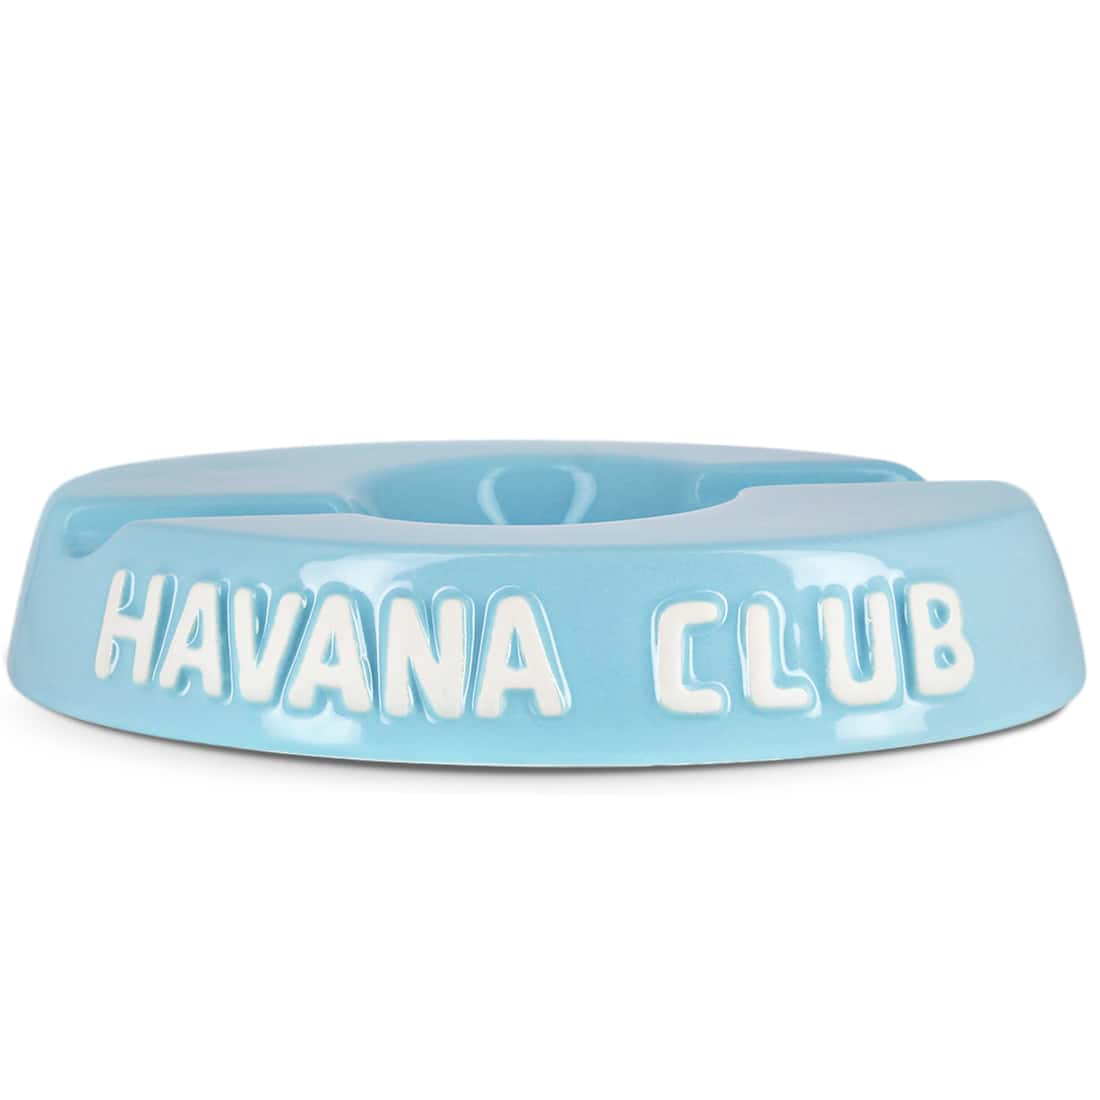 Photo de Cendrier Havana Club Bleu Clair double